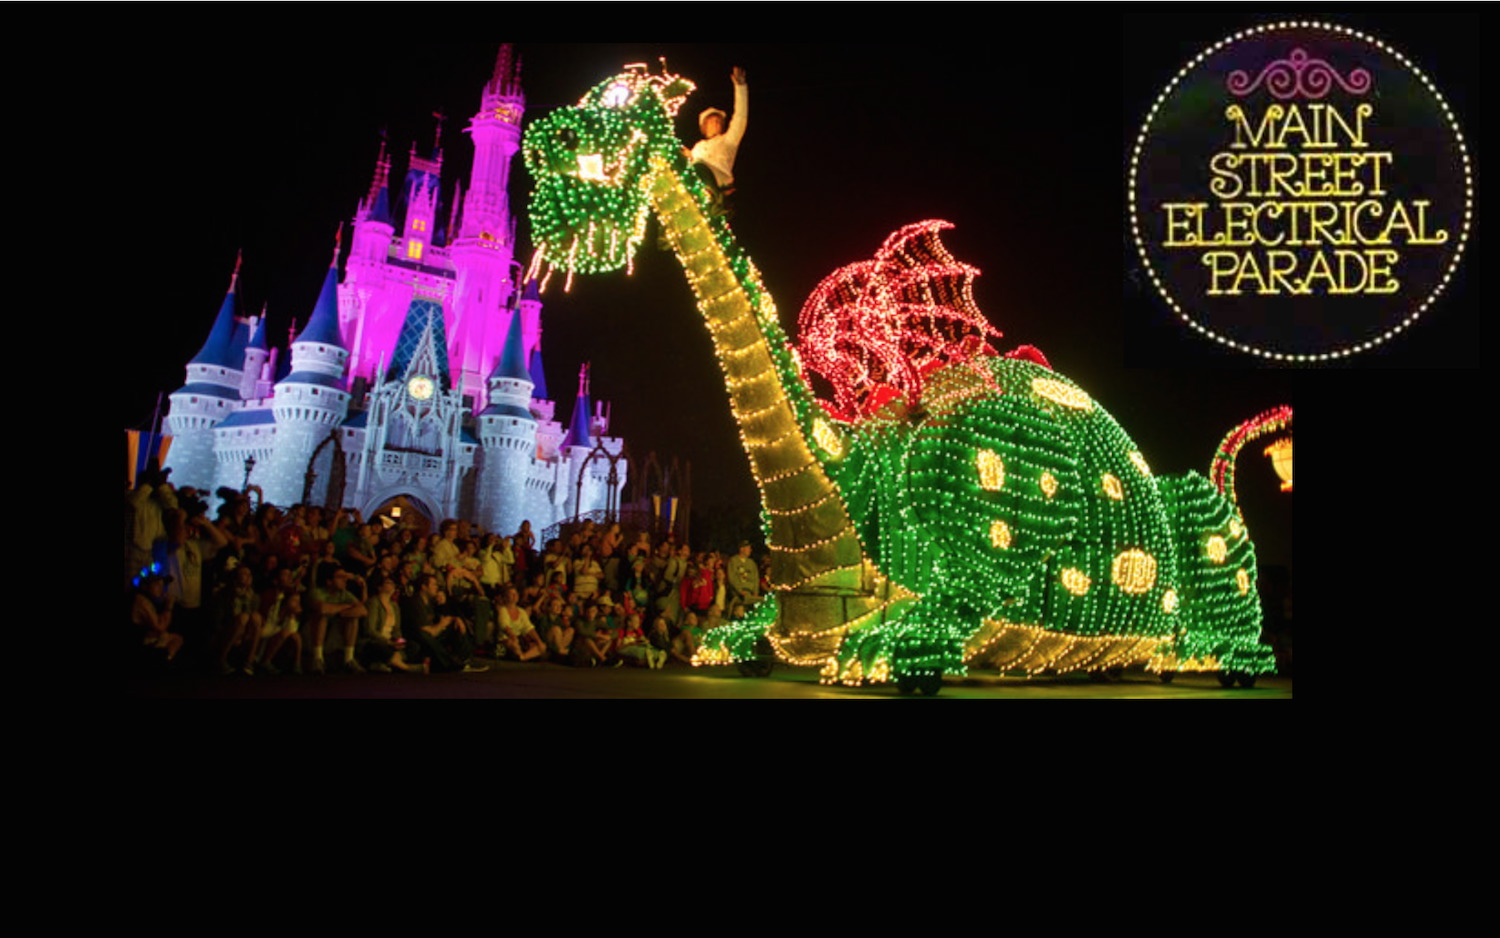 Main Street Electrical Parade STILL Wows at Magic Kingdom